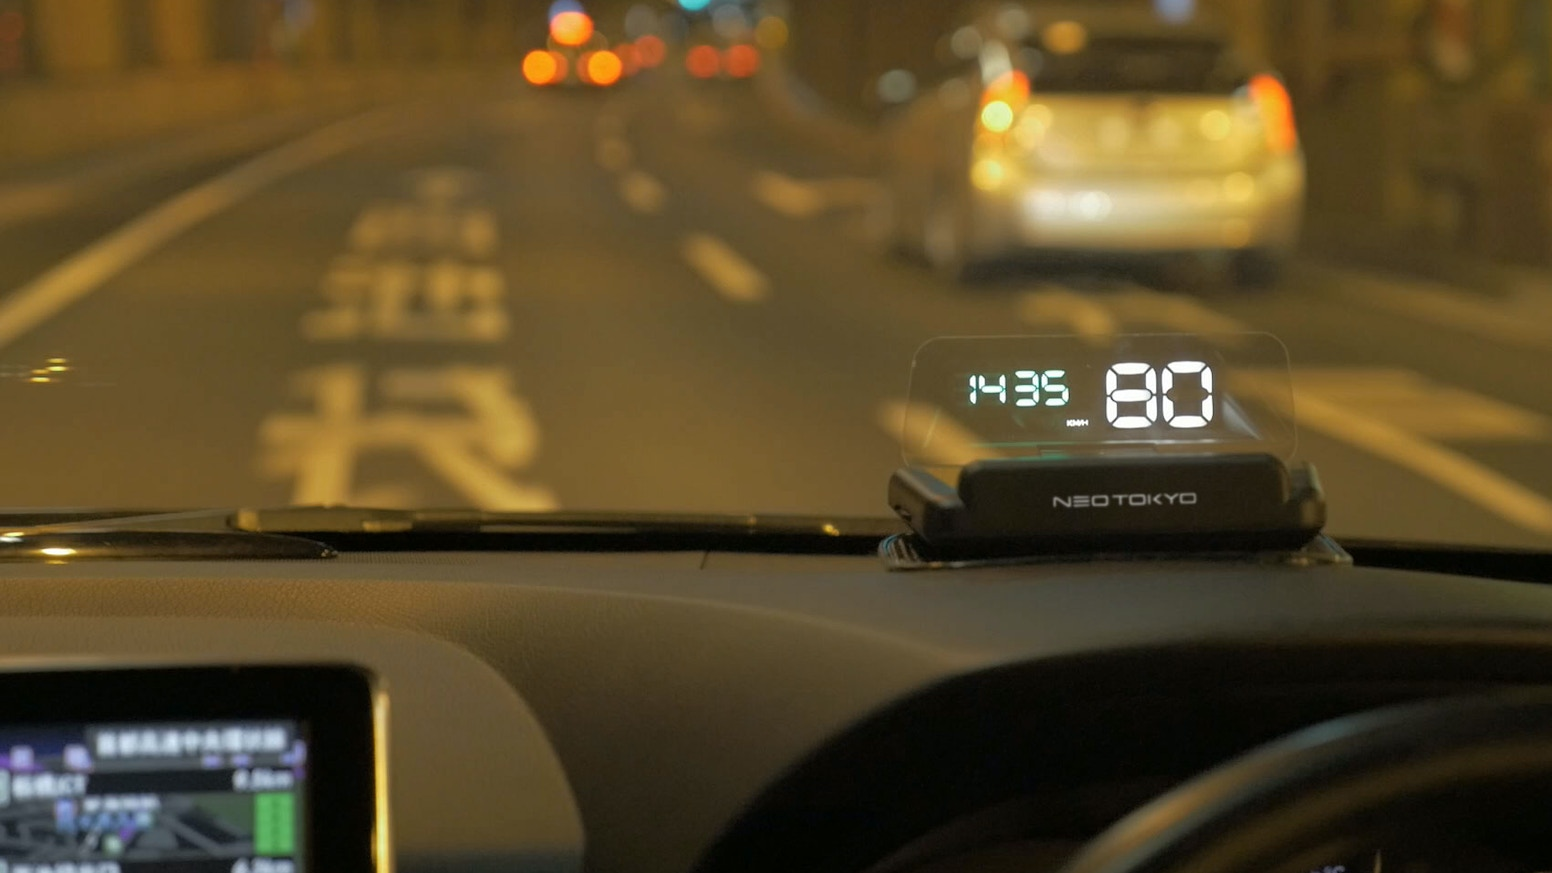 Car Head-Up Display - Hud NEOTOKYO